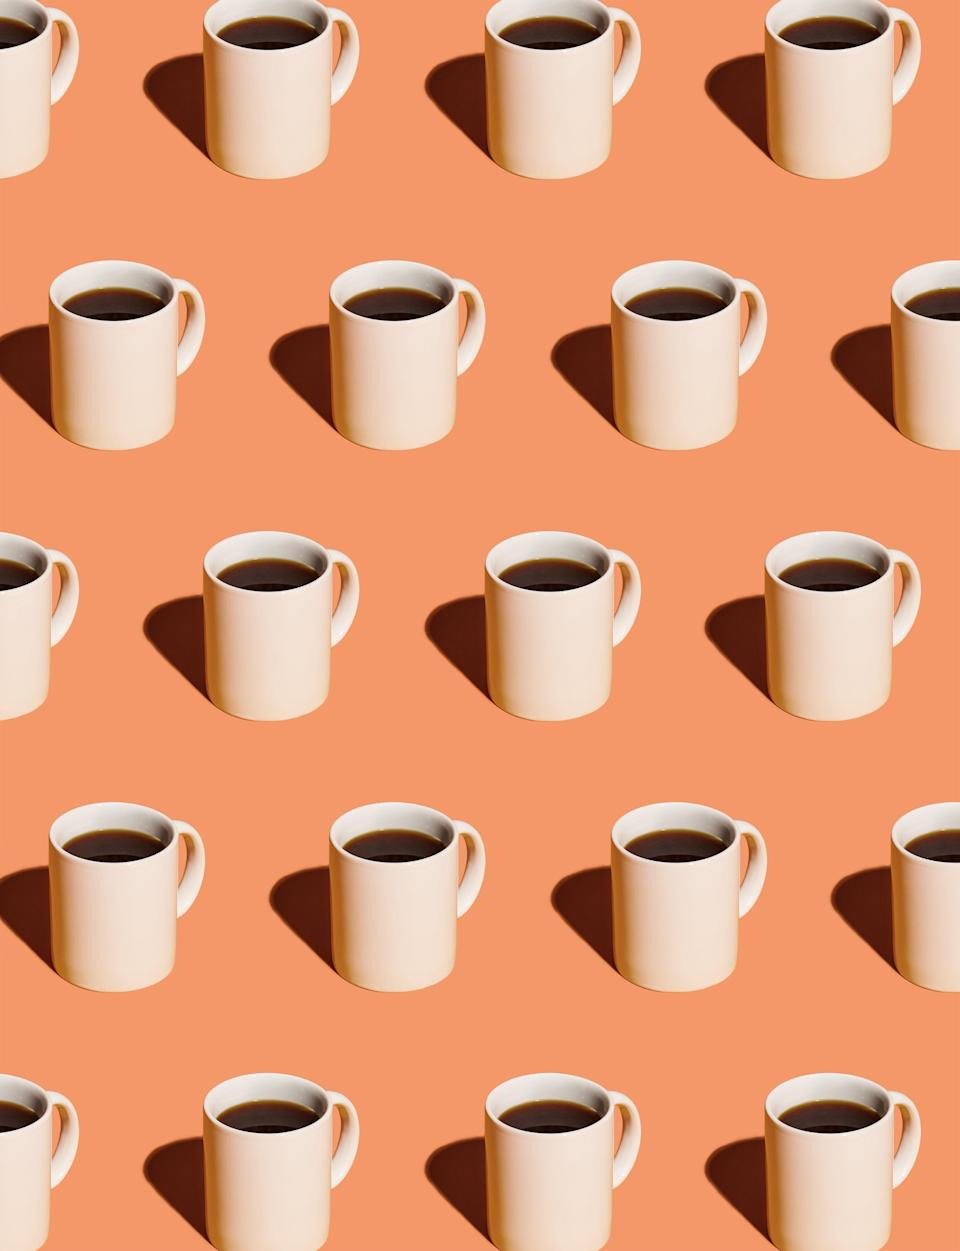 """<p>Sometimes there's a trade-off when searching for the best instant coffee: Taste in exchange for convenience, flavor, or affordability. But the instant coffee game has seriously upgraded in recent years to meet the needs of <a href=""""https://www.goodhousekeeping.com/holidays/gift-ideas/g29499968/best-camping-gift-ideas/"""" rel=""""nofollow noopener"""" target=""""_blank"""" data-ylk=""""slk:café-conscious campers"""" class=""""link rapid-noclick-resp"""">café-conscious campers</a> without a <a href=""""https://www.goodhousekeeping.com/appliances/coffee-maker-reviews/a29554331/types-of-coffee-makers/"""" rel=""""nofollow noopener"""" target=""""_blank"""" data-ylk=""""slk:coffee maker"""" class=""""link rapid-noclick-resp"""">coffee maker</a>, <a href=""""https://www.goodhousekeeping.com/travel-products/travel-coffee-mug-reviews/g785/best-travel-coffee-mugs/"""" rel=""""nofollow noopener"""" target=""""_blank"""" data-ylk=""""slk:on-the-go commuters"""" class=""""link rapid-noclick-resp"""">on-the-go commuters</a>, or just the average Jane demanding more from her cup of joe. </p><p>In addition to the classic """"just add hot water"""" varieties, you can now find instant coffee tucked into tea bags or placed in fold-out <a href=""""https://www.goodhousekeeping.com/food-recipes/cooking/g32223075/how-to-make-coffee-at-home/"""" rel=""""nofollow noopener"""" target=""""_blank"""" data-ylk=""""slk:pour overs"""" class=""""link rapid-noclick-resp"""">pour overs</a> that are <a href=""""https://www.goodhousekeeping.com/food-products/g30431317/how-to-create-the-chicest-coffee-bar-right-at-home/"""" rel=""""nofollow noopener"""" target=""""_blank"""" data-ylk=""""slk:the absolute chicest way"""" class=""""link rapid-noclick-resp"""">the absolute chicest way</a> to enjoy coffee campside. Grocery store favorites are raising the bar with higher-quality brews, while specialty roasters are bringing us single-origin blends in an instant, literally. </p><p>After nearly two weeks of <a href=""""https://www.goodhousekeeping.com/holidays/gift-ideas/g29250426/gifts-for-coffee-lovers/"""" rel=""""nofollow noopener"""" target=""""_blank"""" data-ylk=""""slk"""